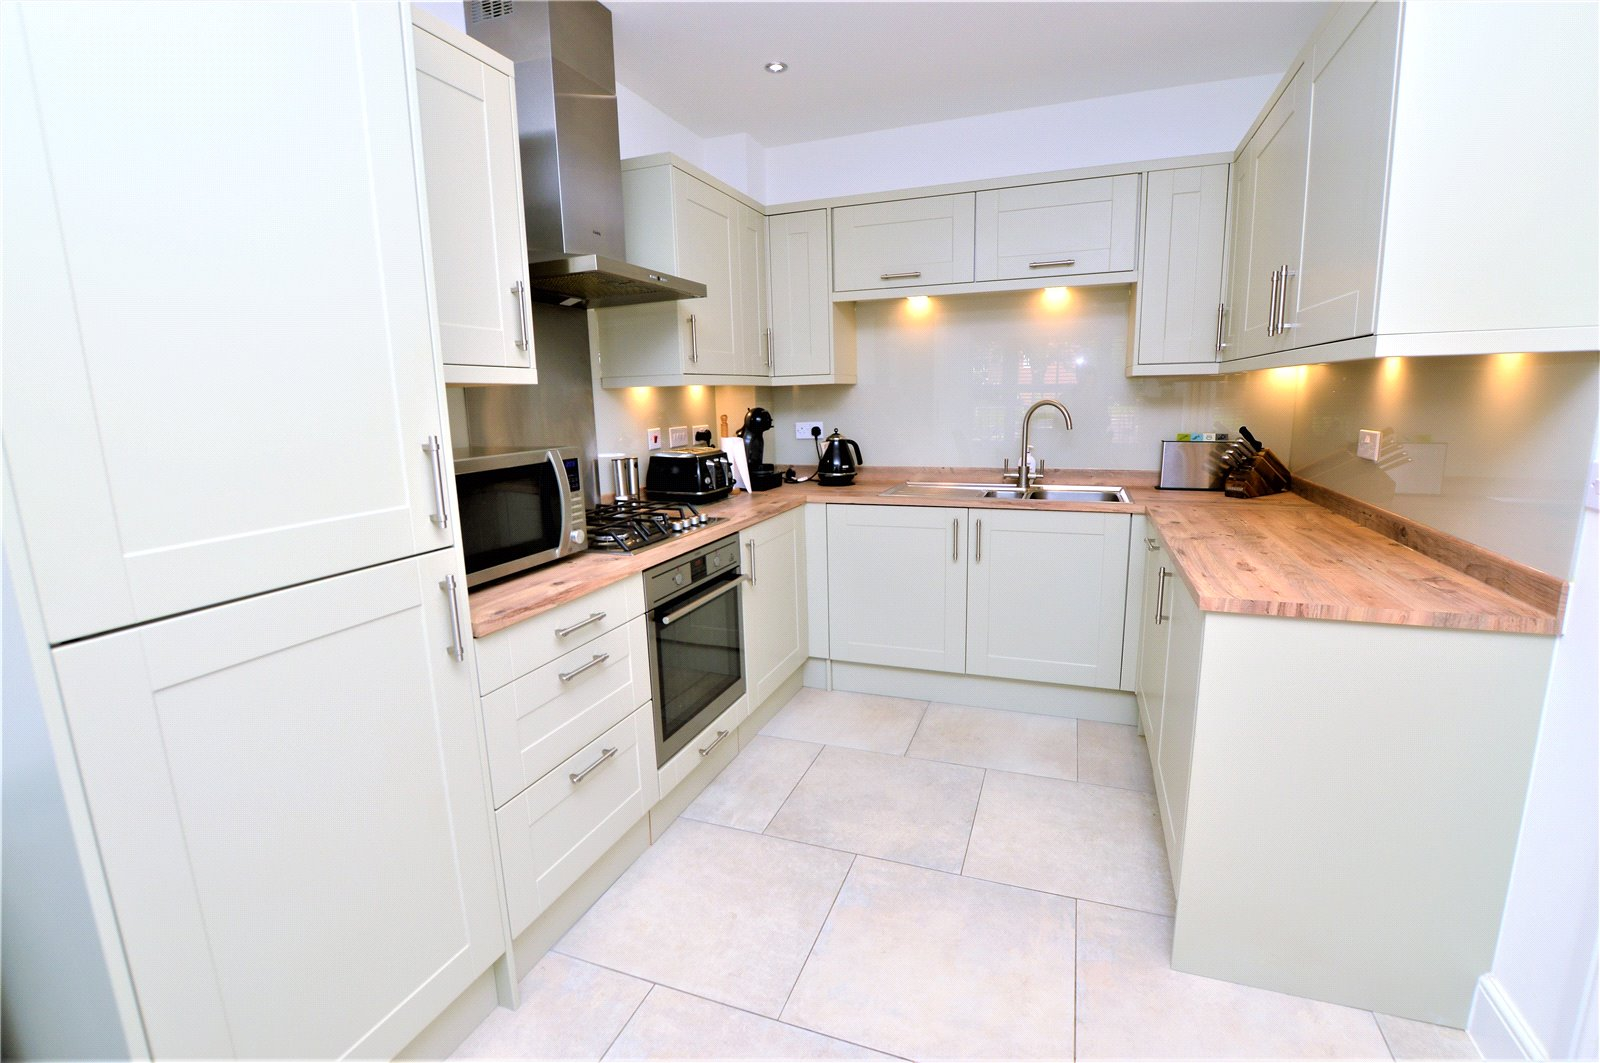 property for sale in Wetherby, interior fitted modern kitchen